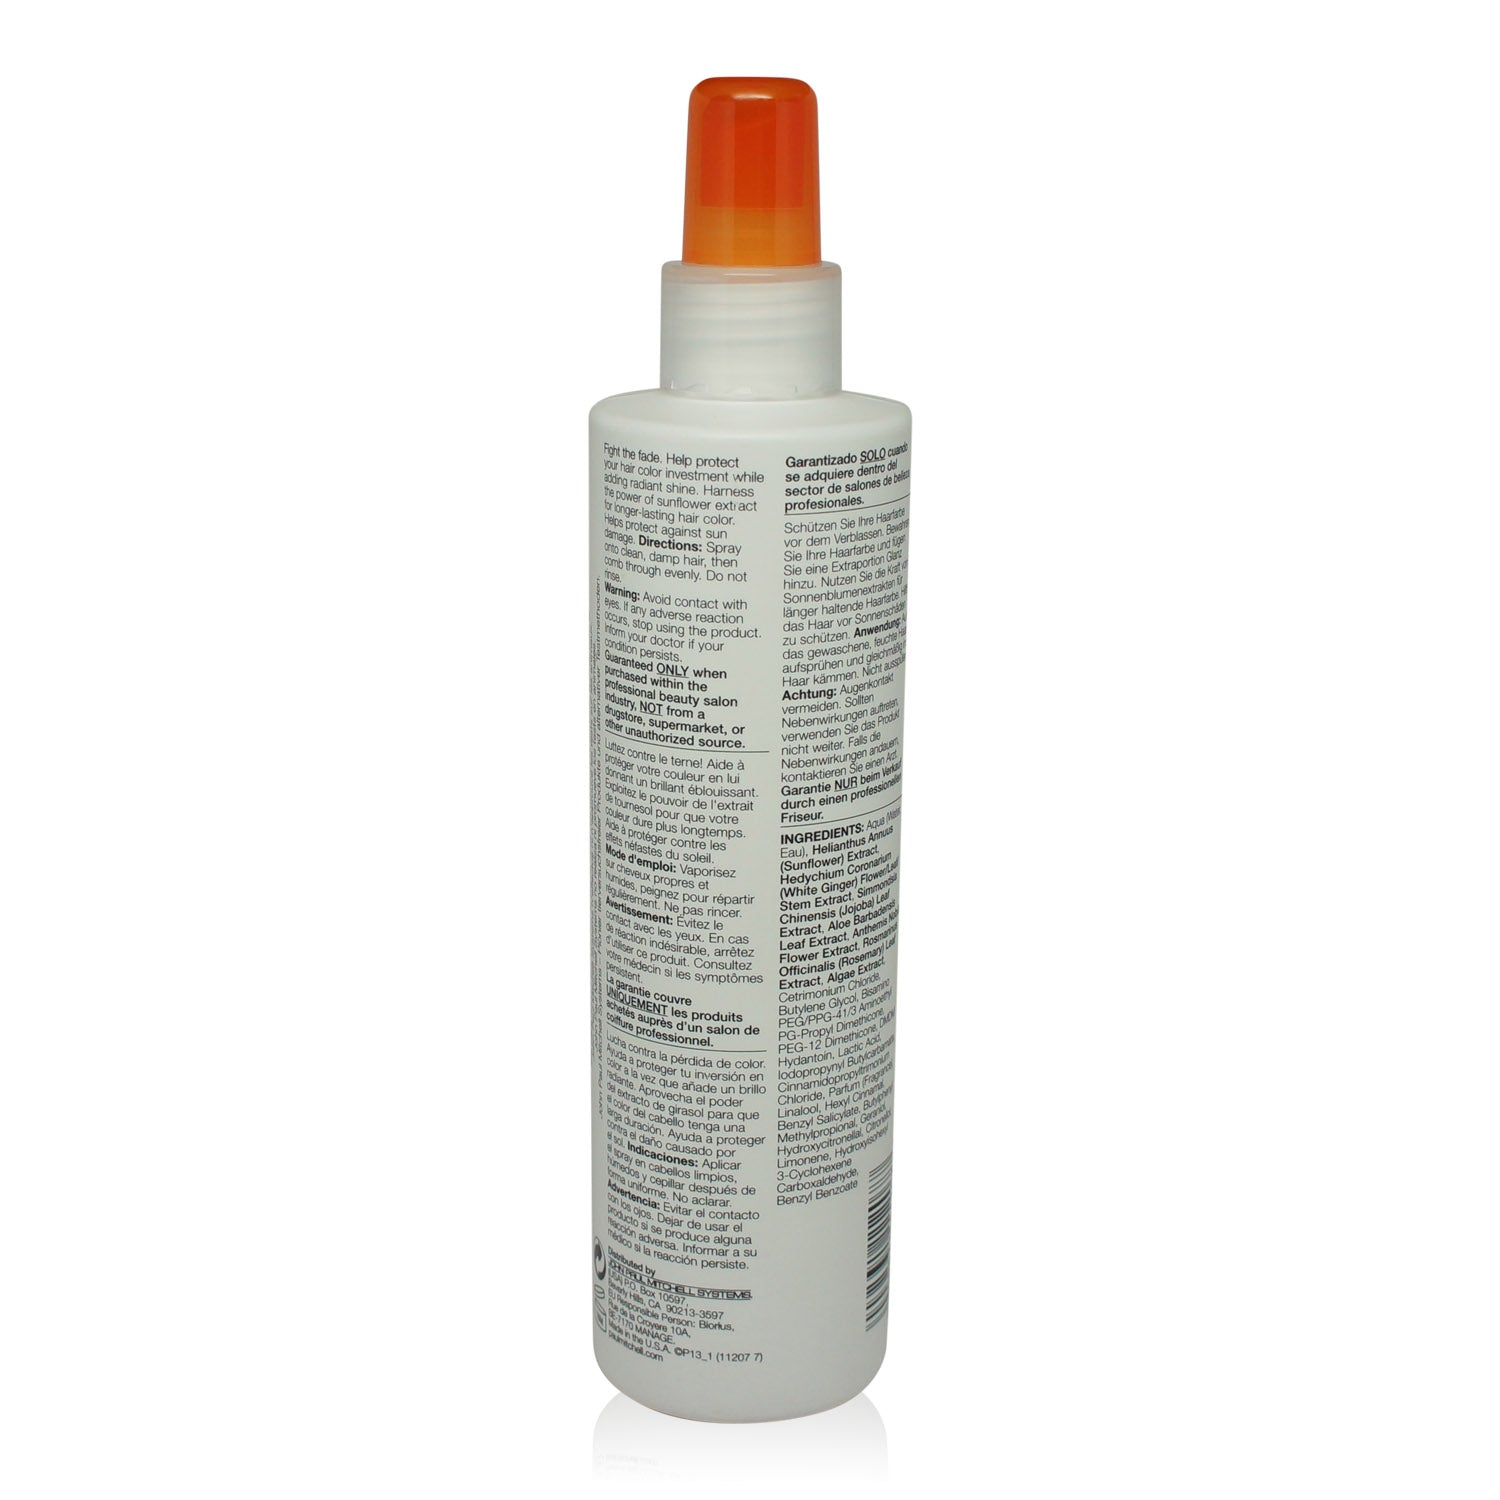 Paul Mitchell Color Protect Locking Spray 8.5 oz.